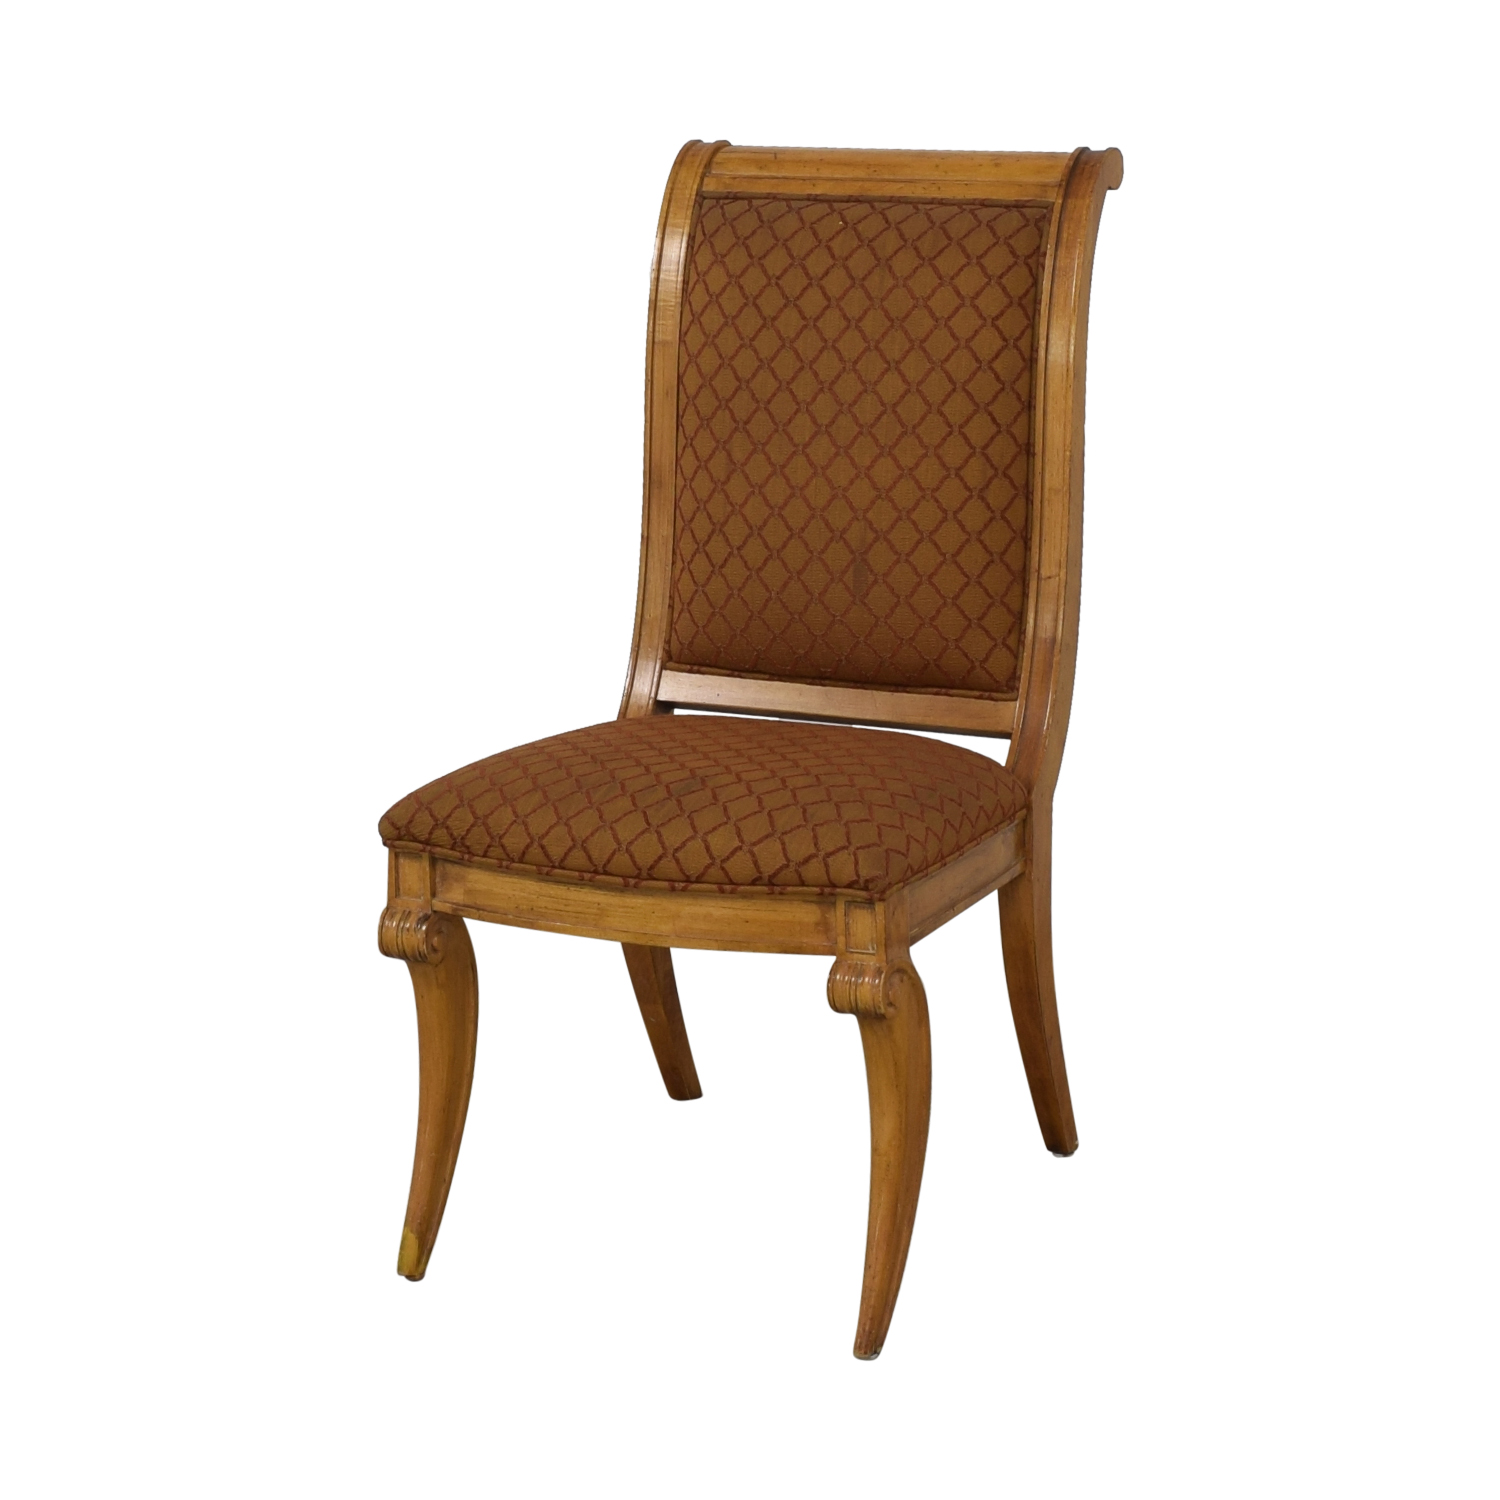 Century Furniture Century Furniture Upholstered Dining Chairs dimensions